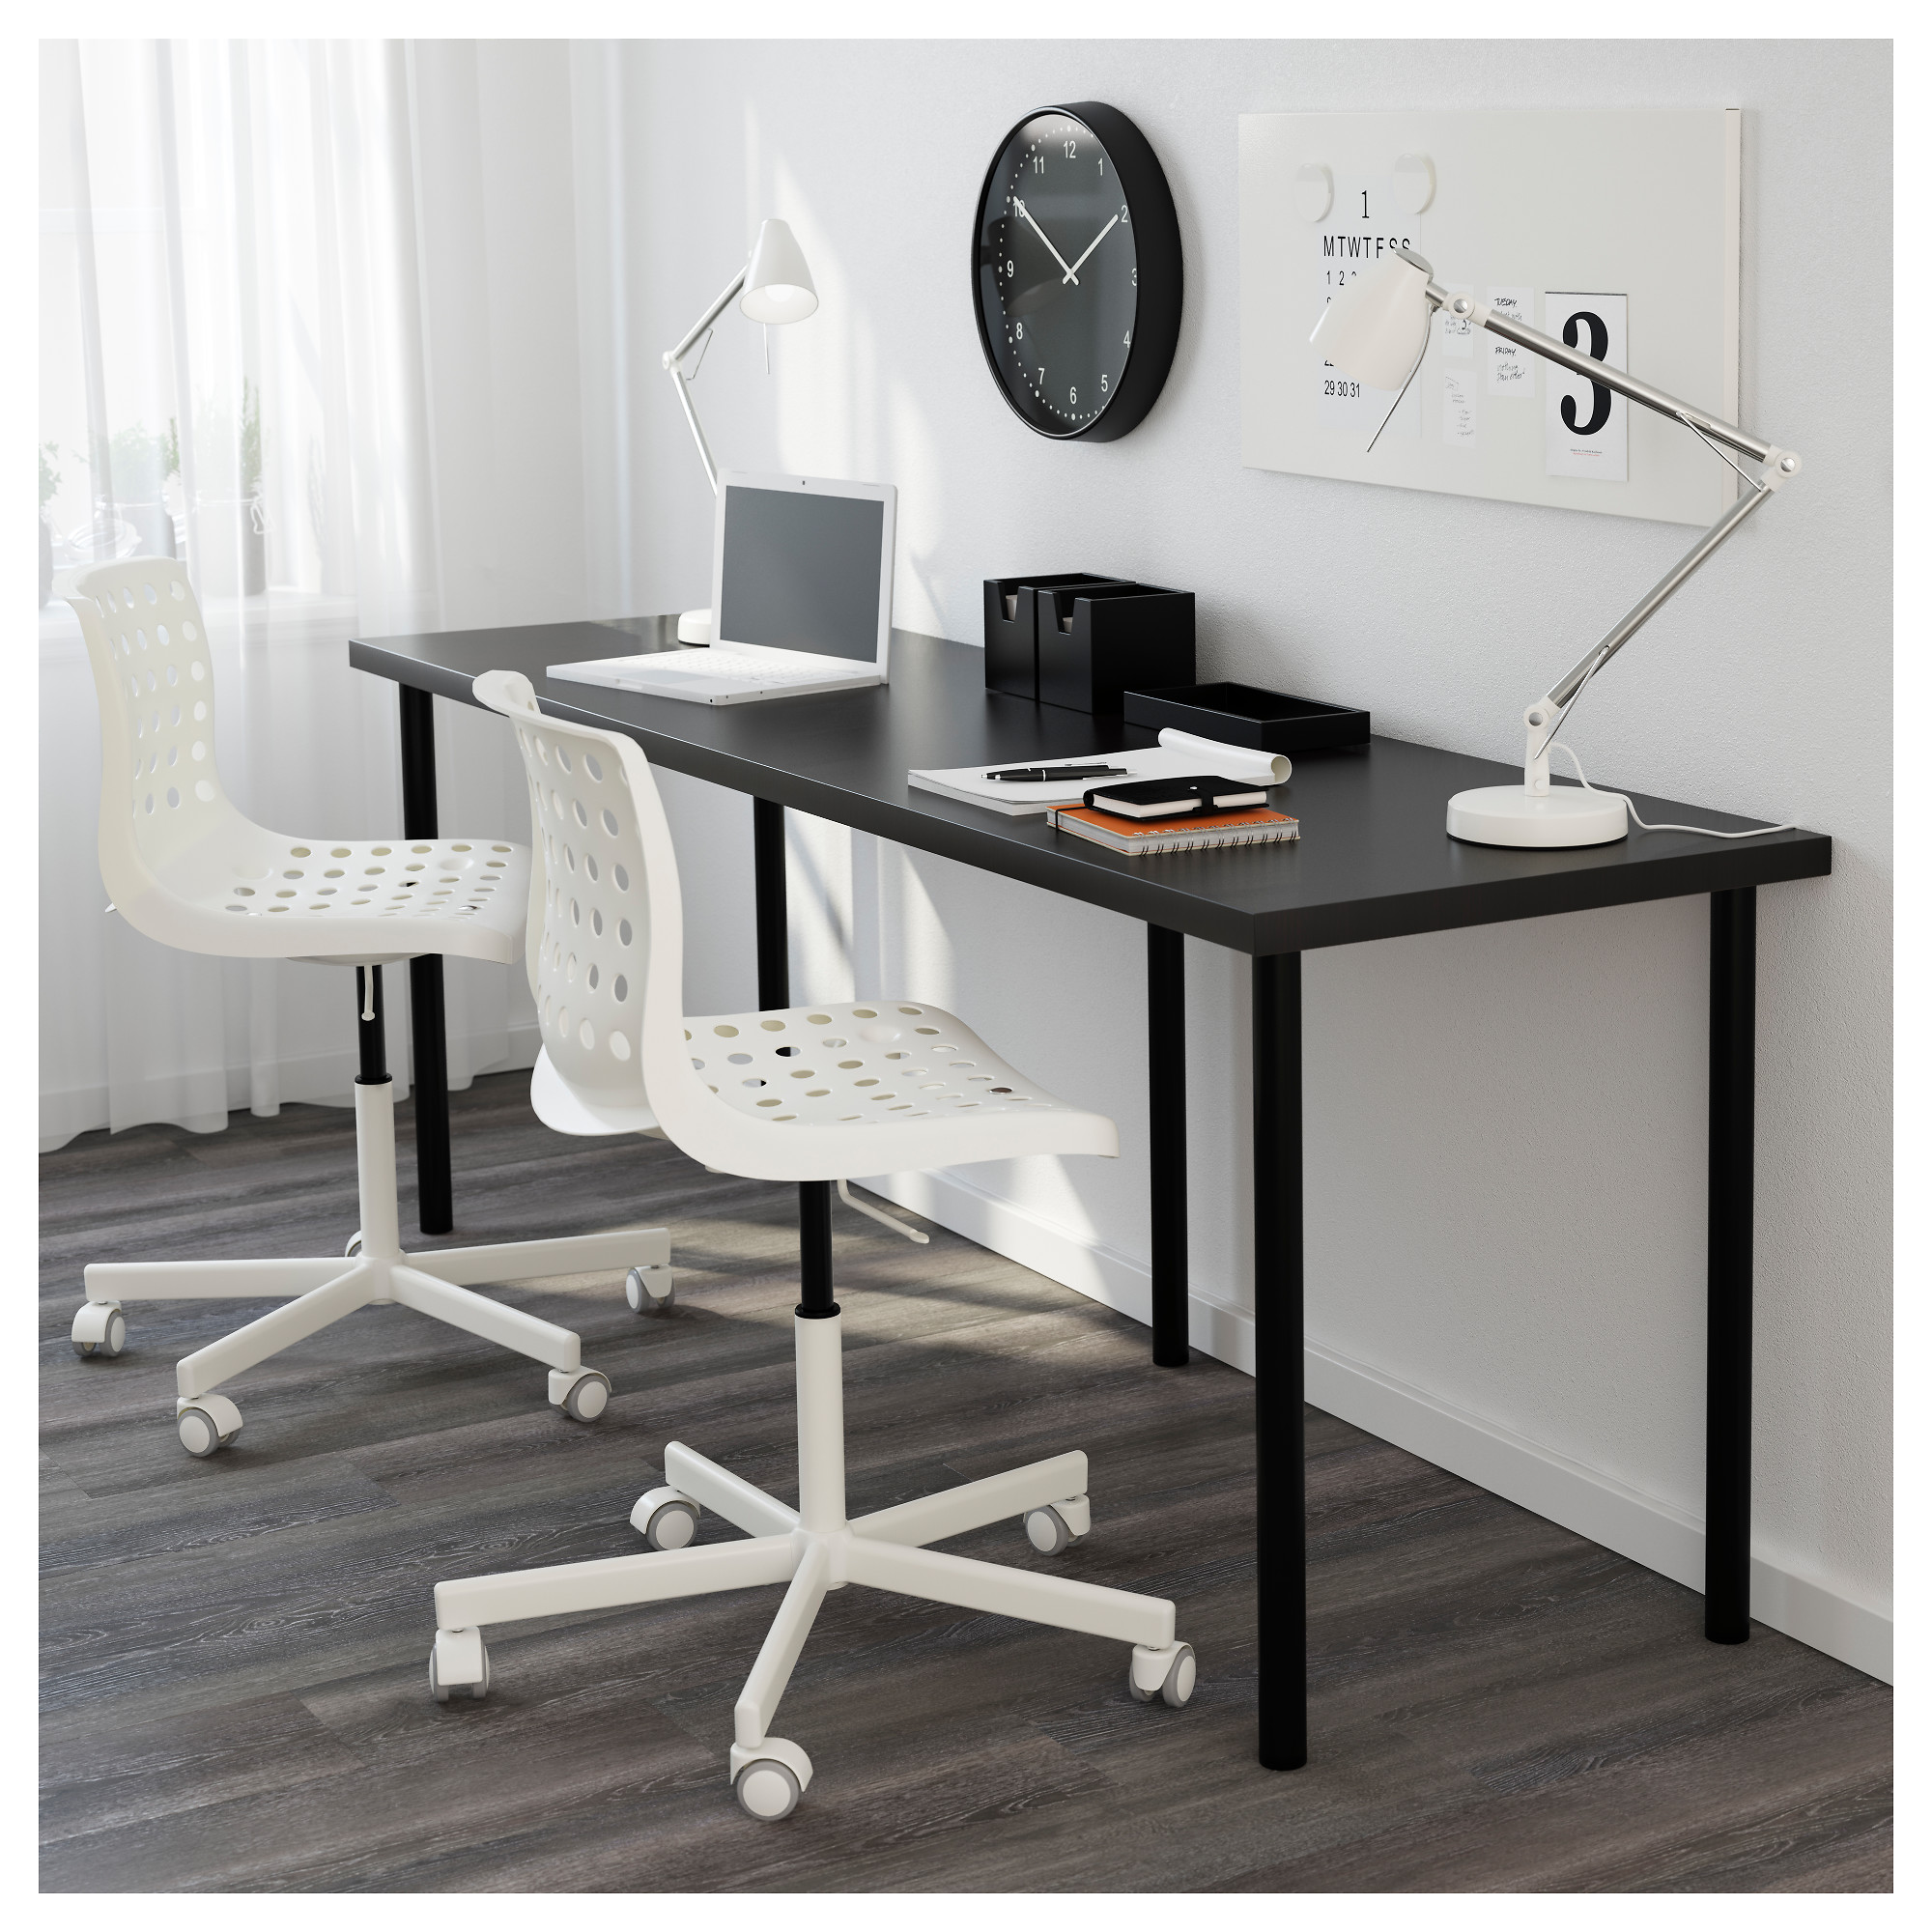 table linnmon catalog desk adils ca ikea white products en